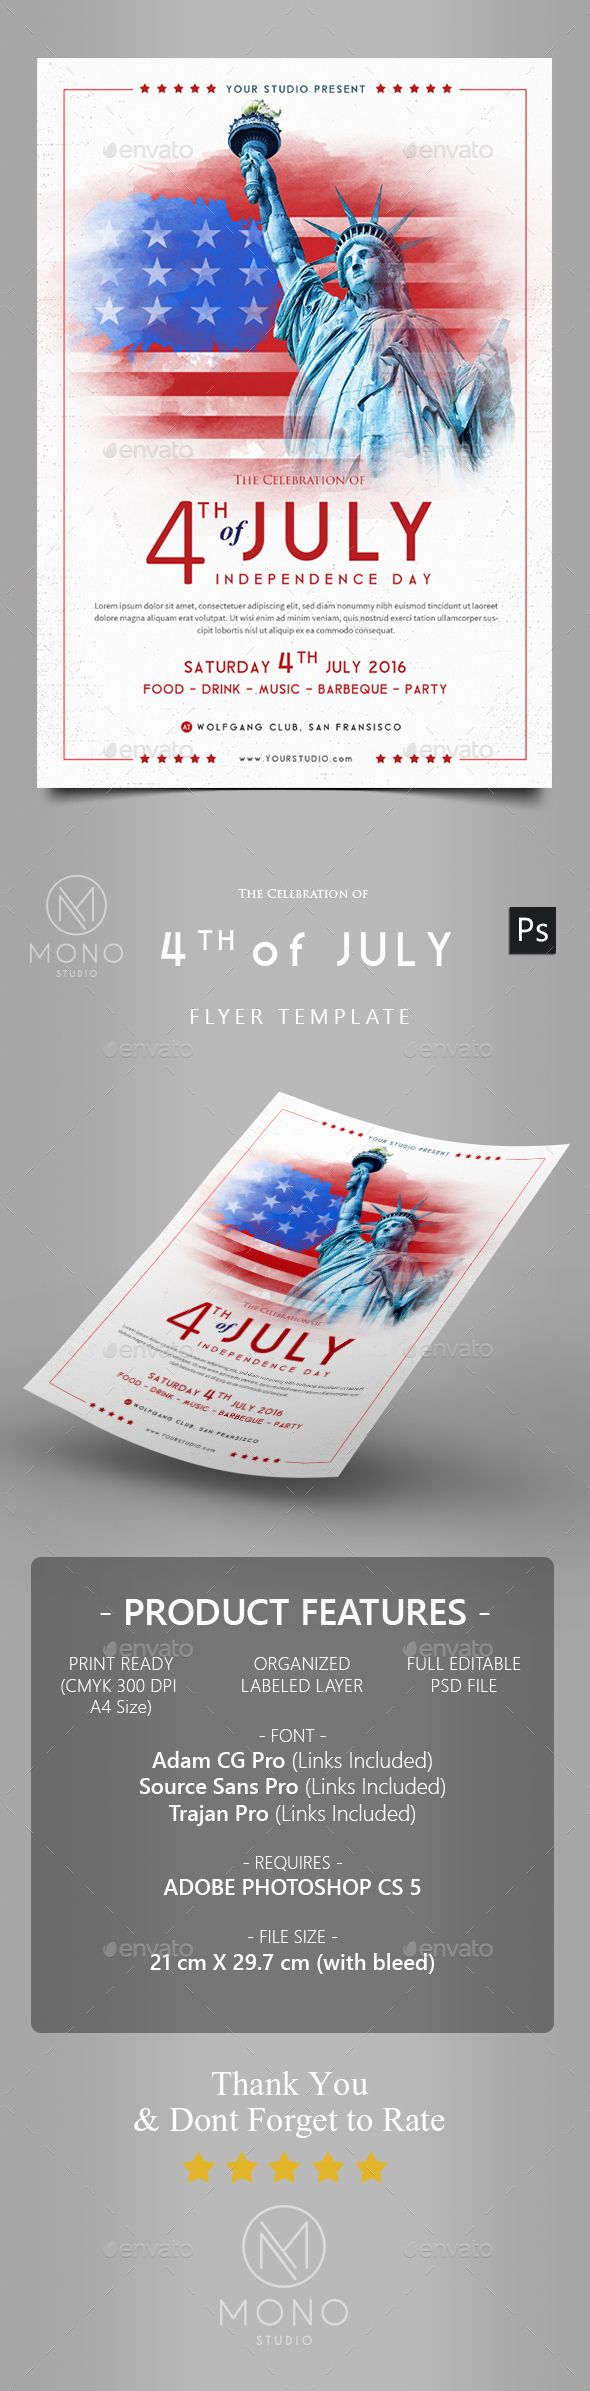 Poster design in photoshop 7 - 4th Of July Flyer 2